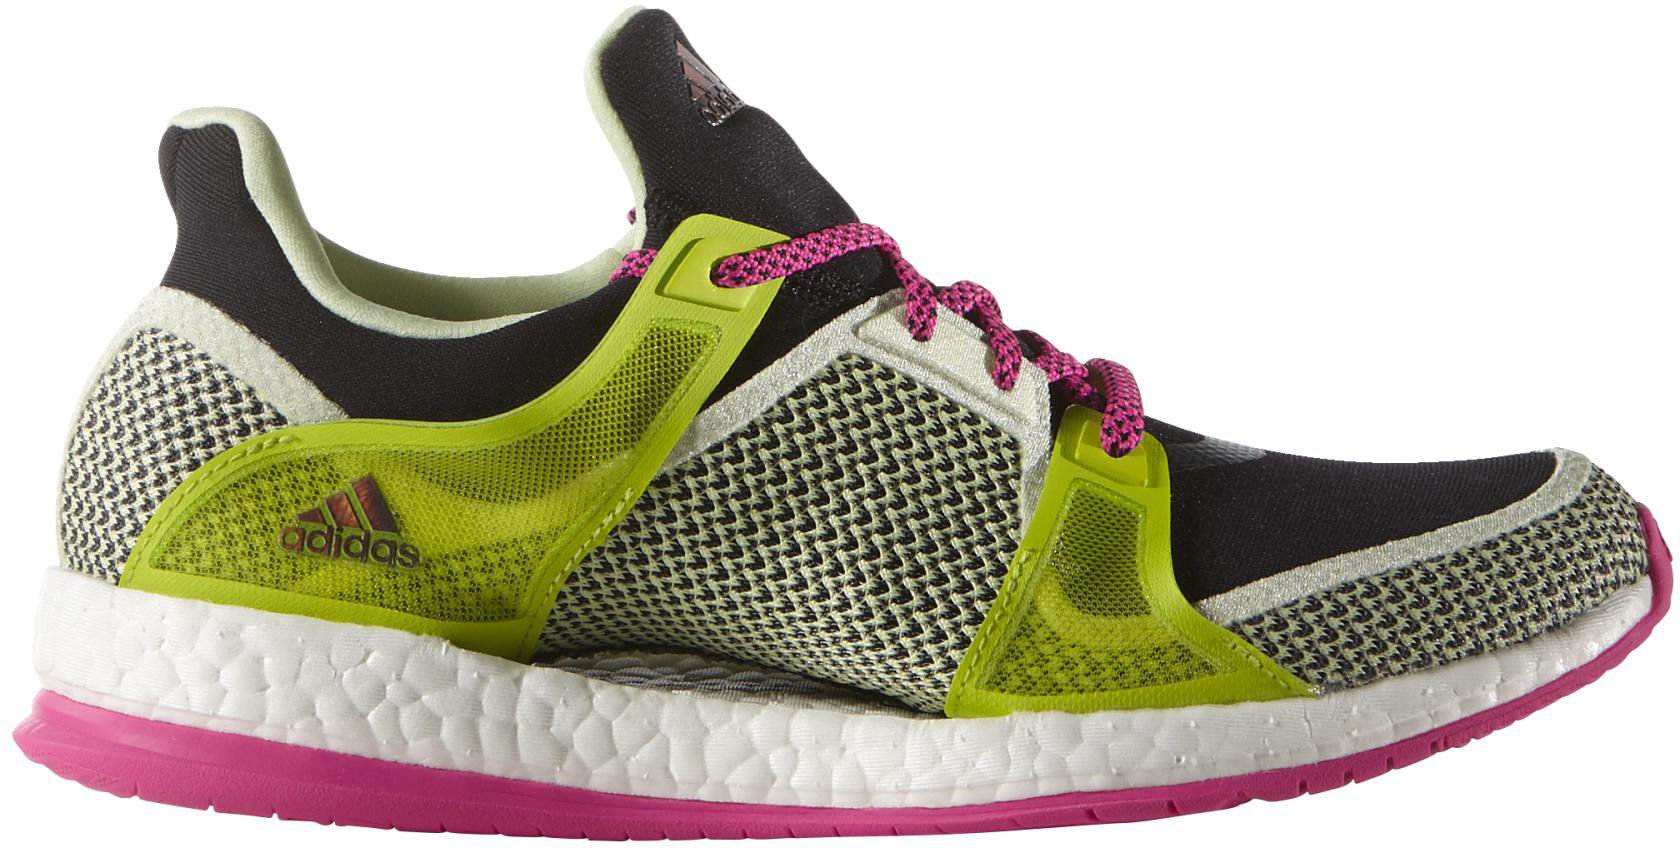 adidas boost women's black and pink